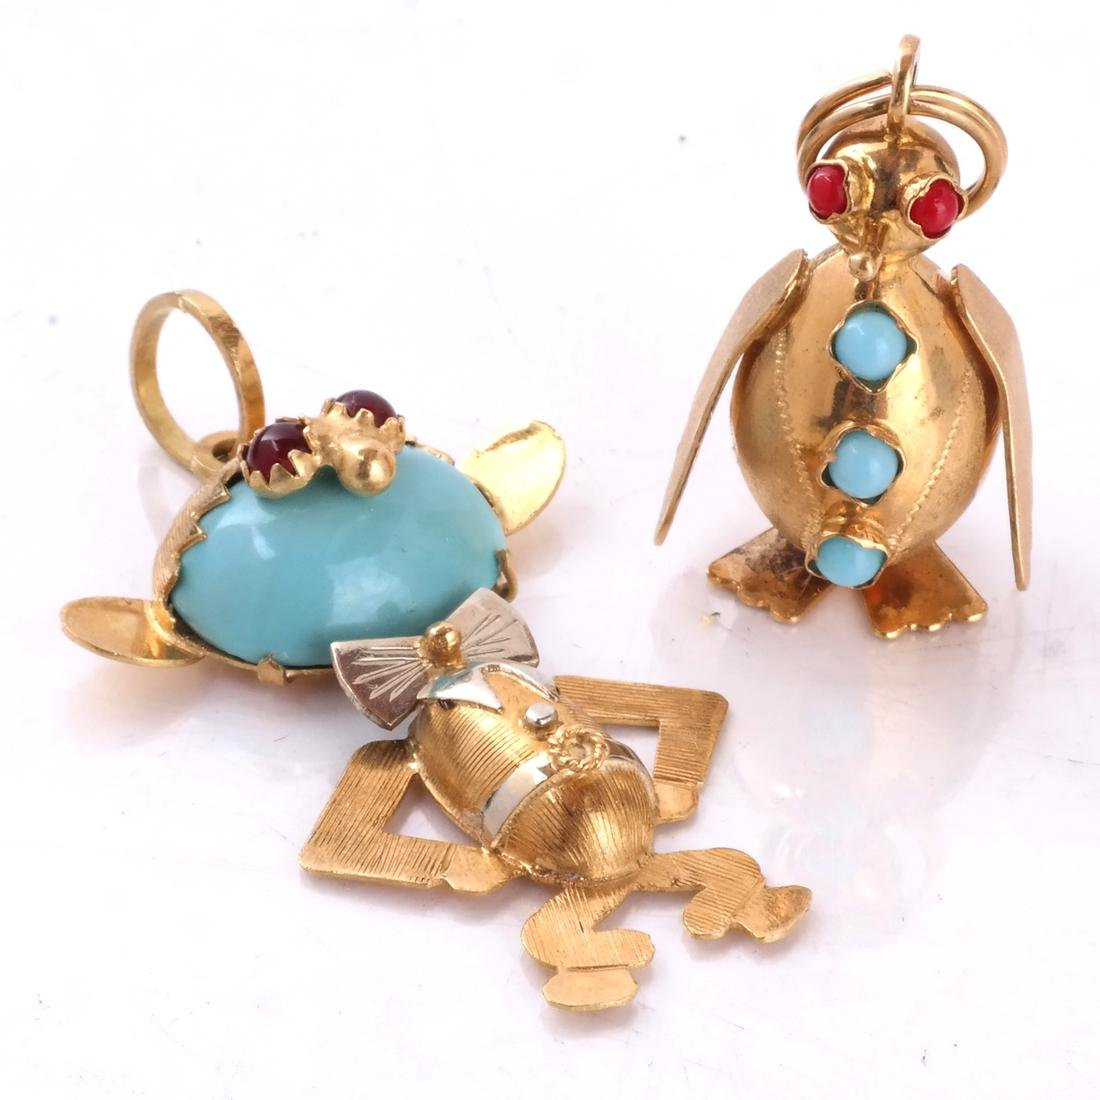 18k Charms, Lot of 2